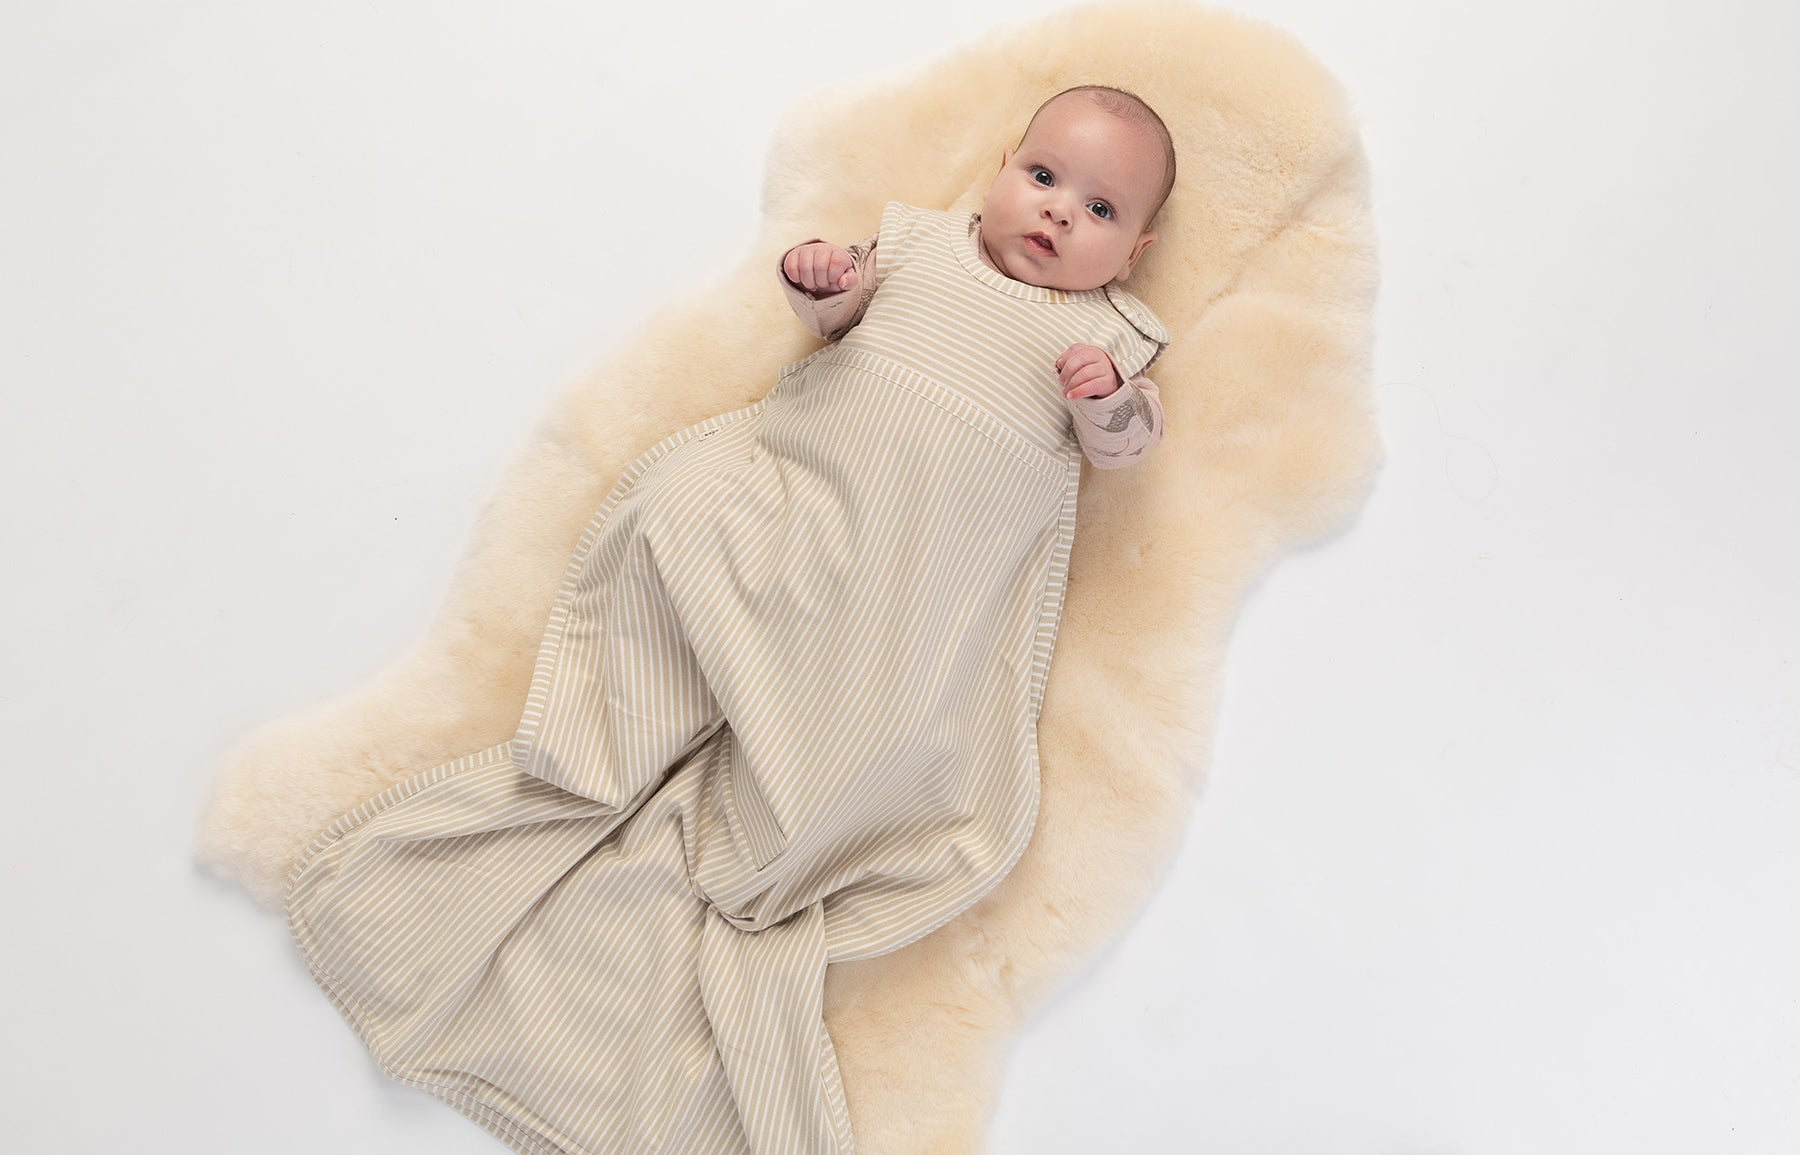 Discover the iconic Go Go Bag -                          Our Go Go Sleeping Bag is the world's first natural baby sleep bag to use 100% superfine merino wool to keep baby at a safe, regulated temperature throughout their sleep.